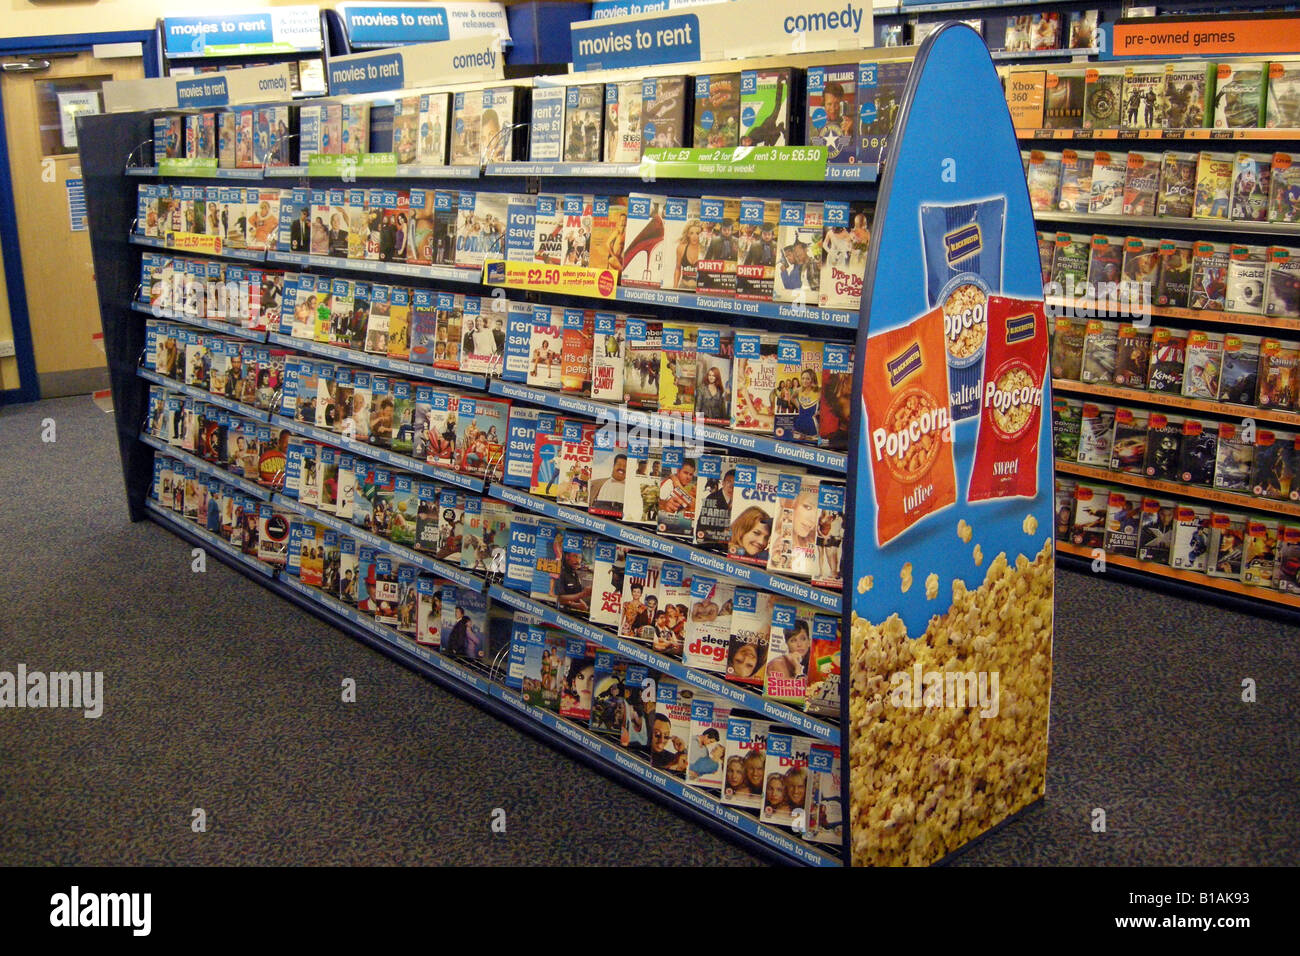 blockbuster movies new releases dvd rental movie html